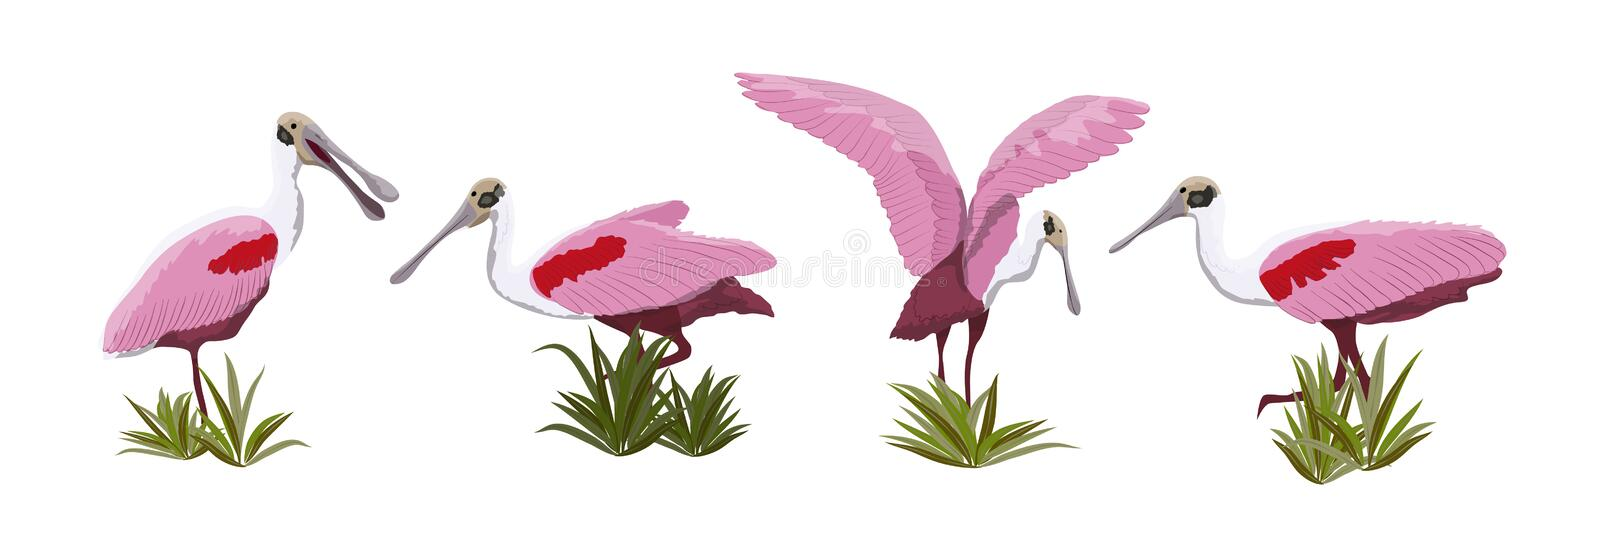 Collection d'oiseau de spatule rose Animaux de la Floride, du Chili et de l'Argentine illustration stock